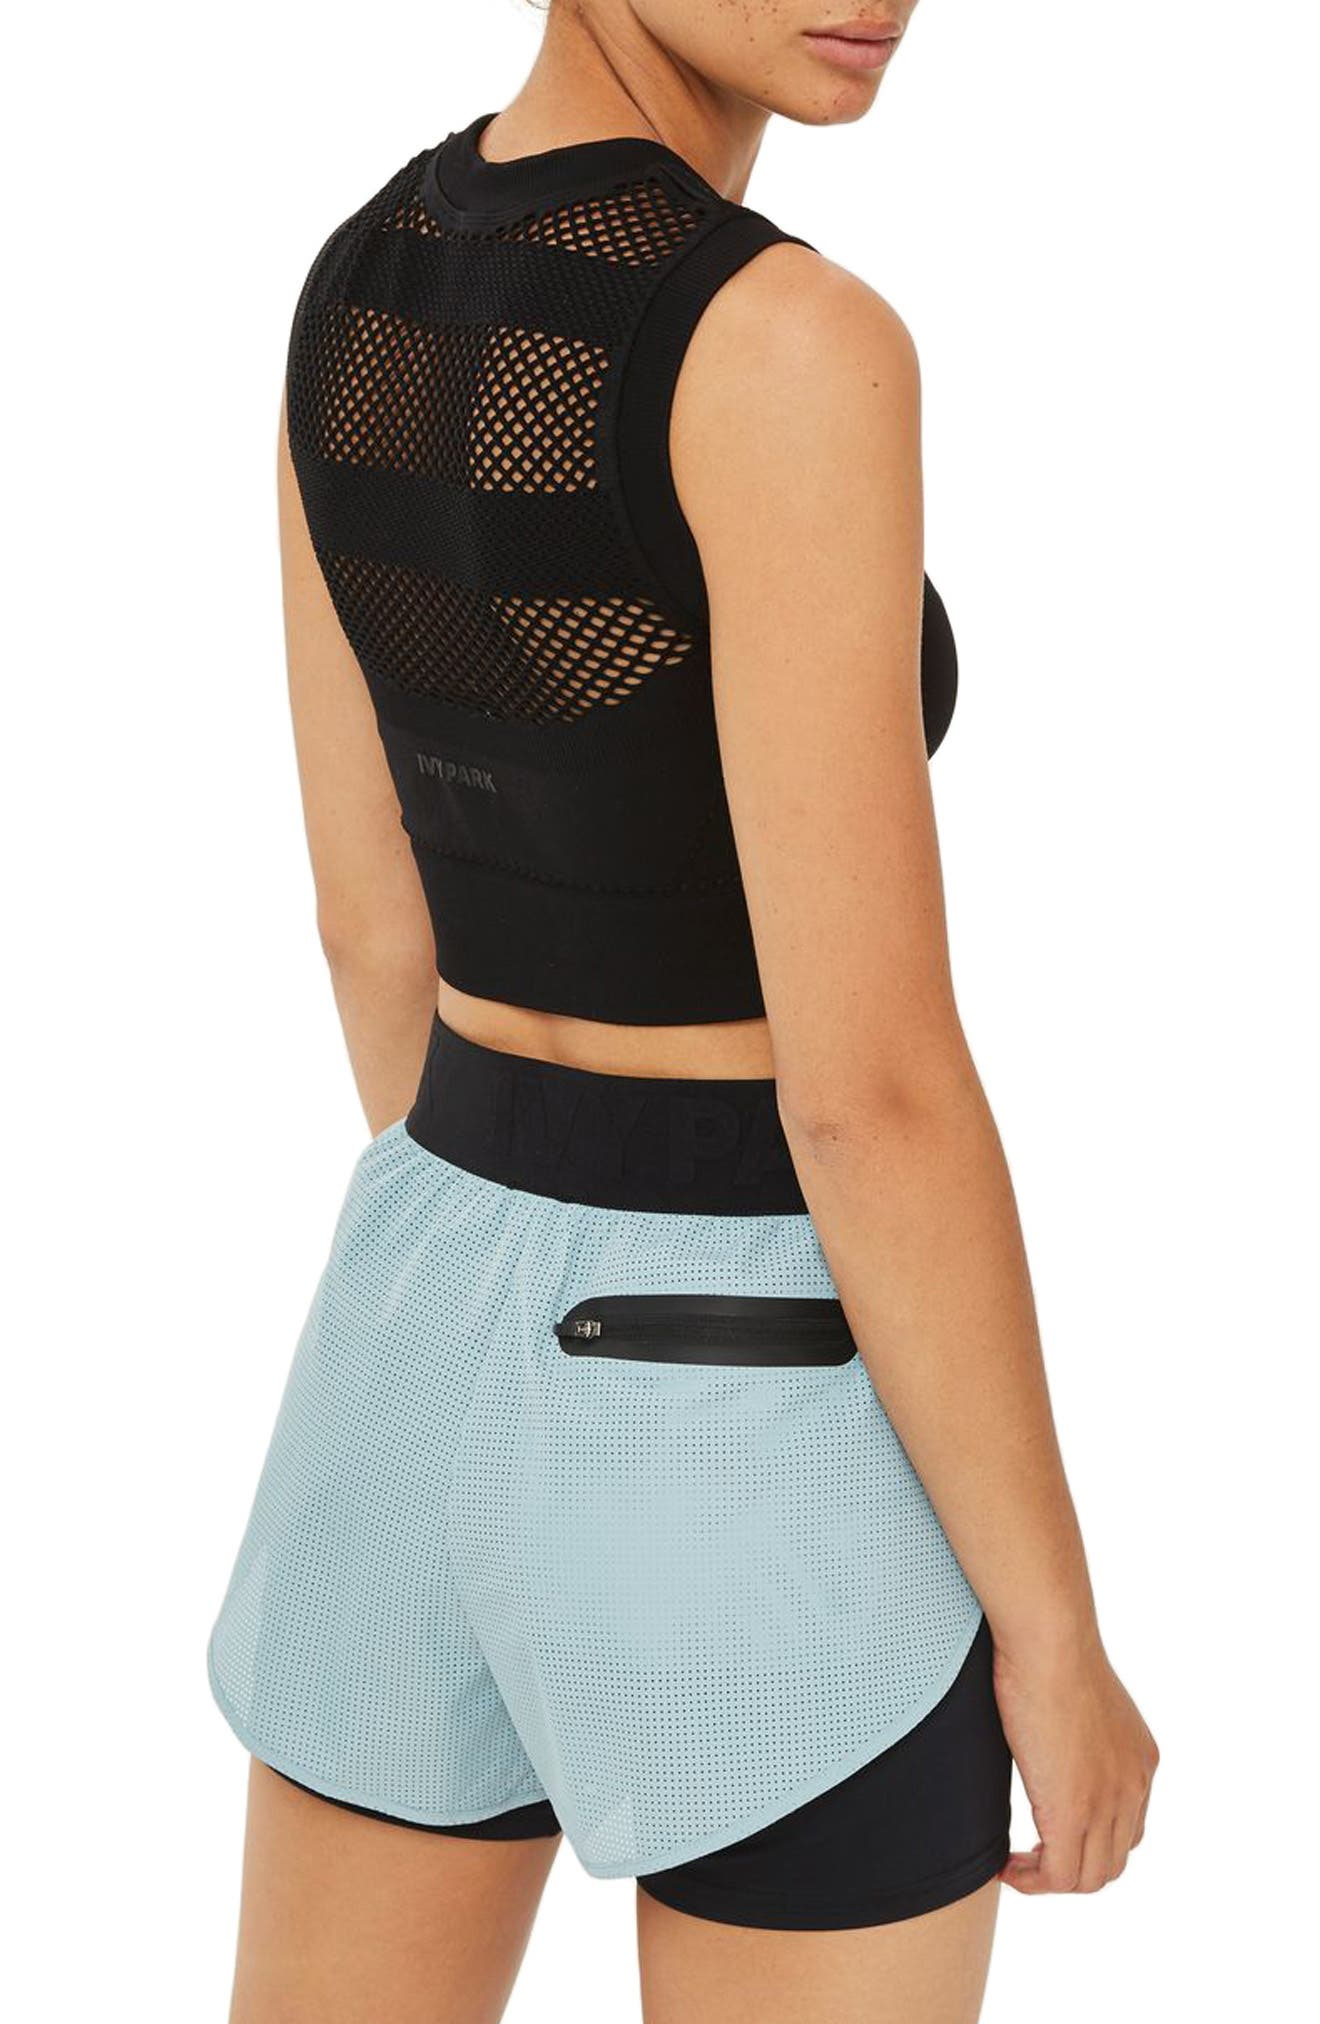 Perforated 2-in-1 Runner Shorts,                             Alternate thumbnail 2, color,                             450